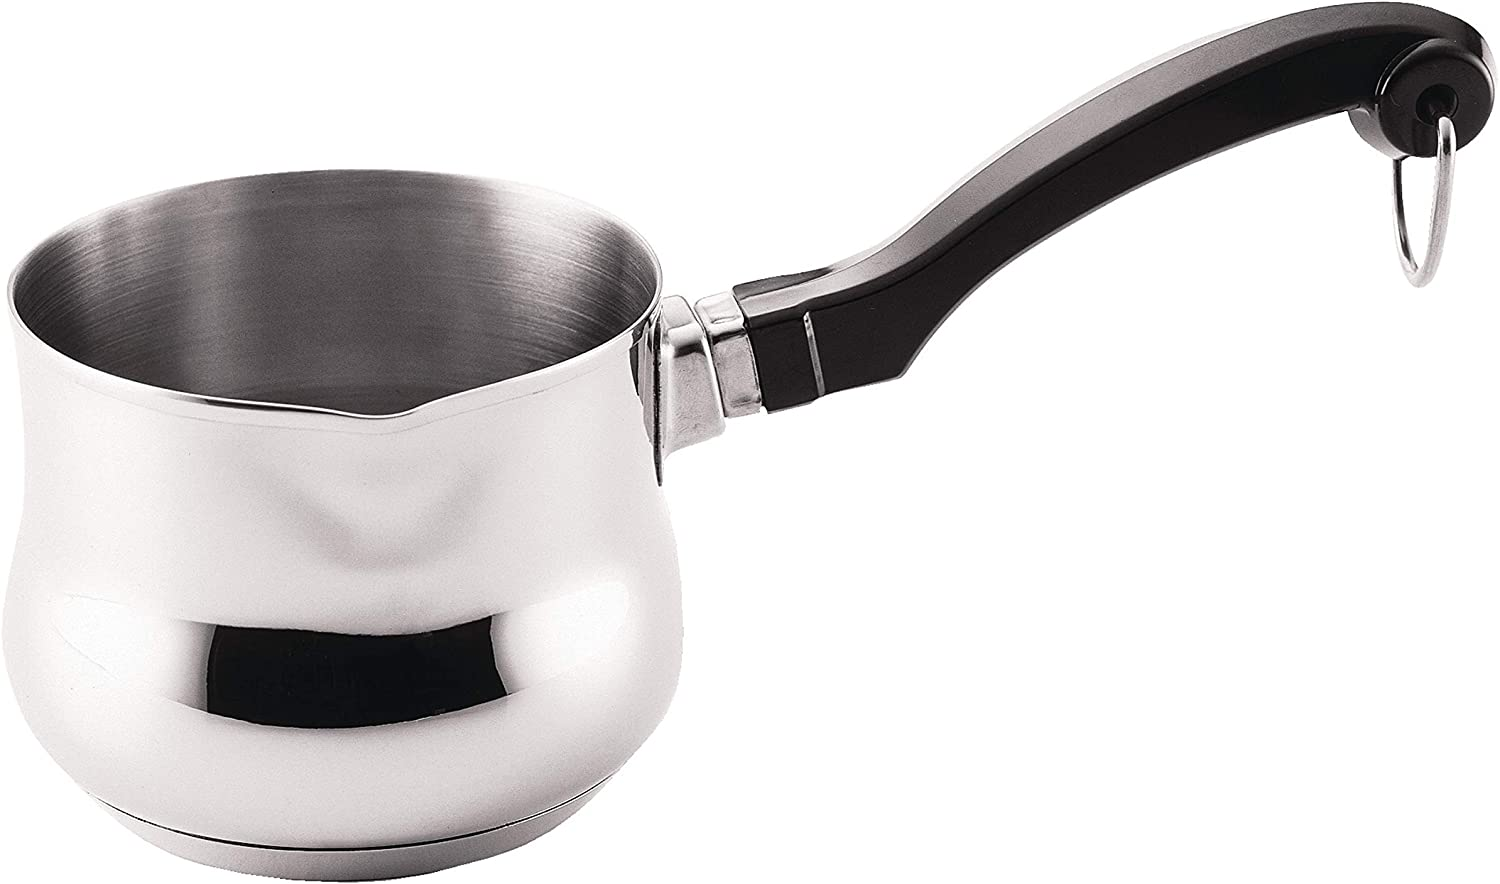 Farberware Classic Series Stainless Steel Butter Warmer/Small Saucepan Dishwasher Safe, 0.625 Quart, Silver